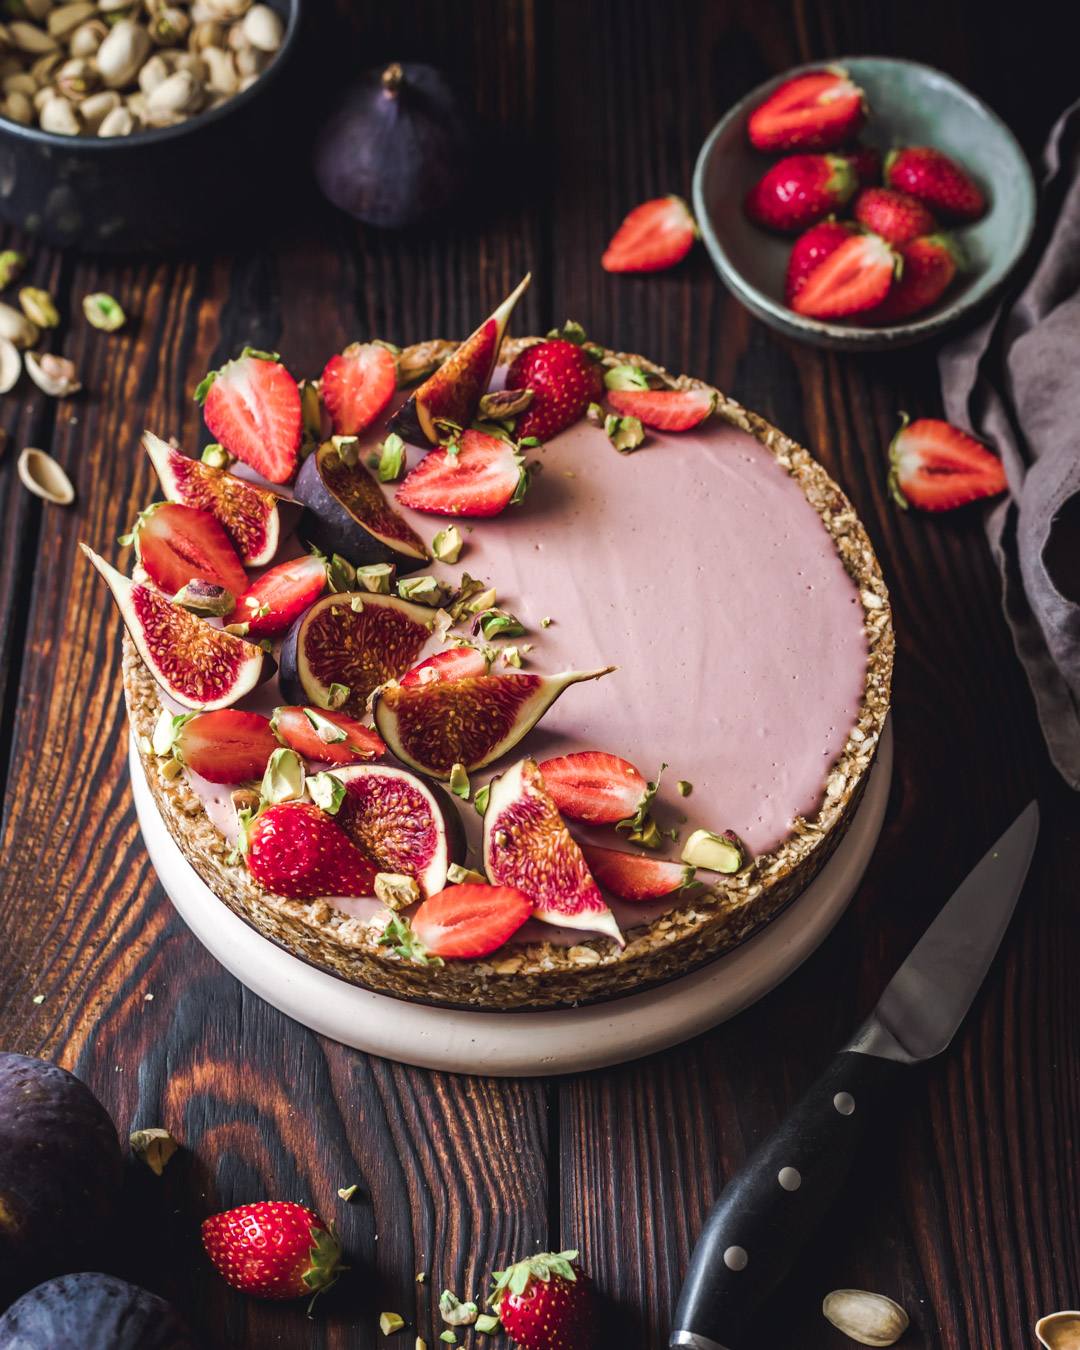 Vegan Tart with pistachios